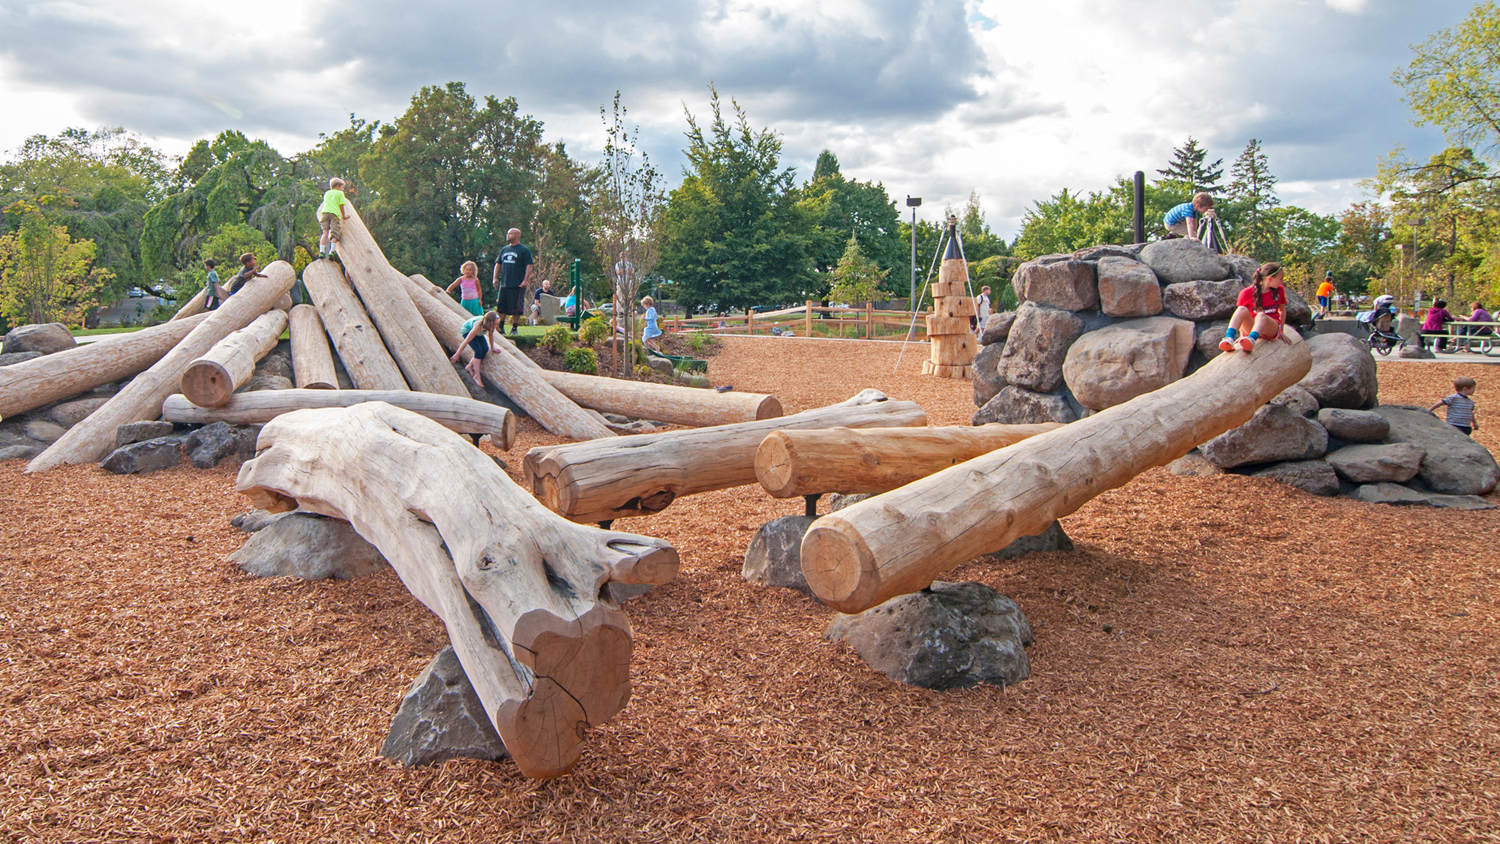 logs come to a point with children climbing, standing on piles of rocks on a cloudy day